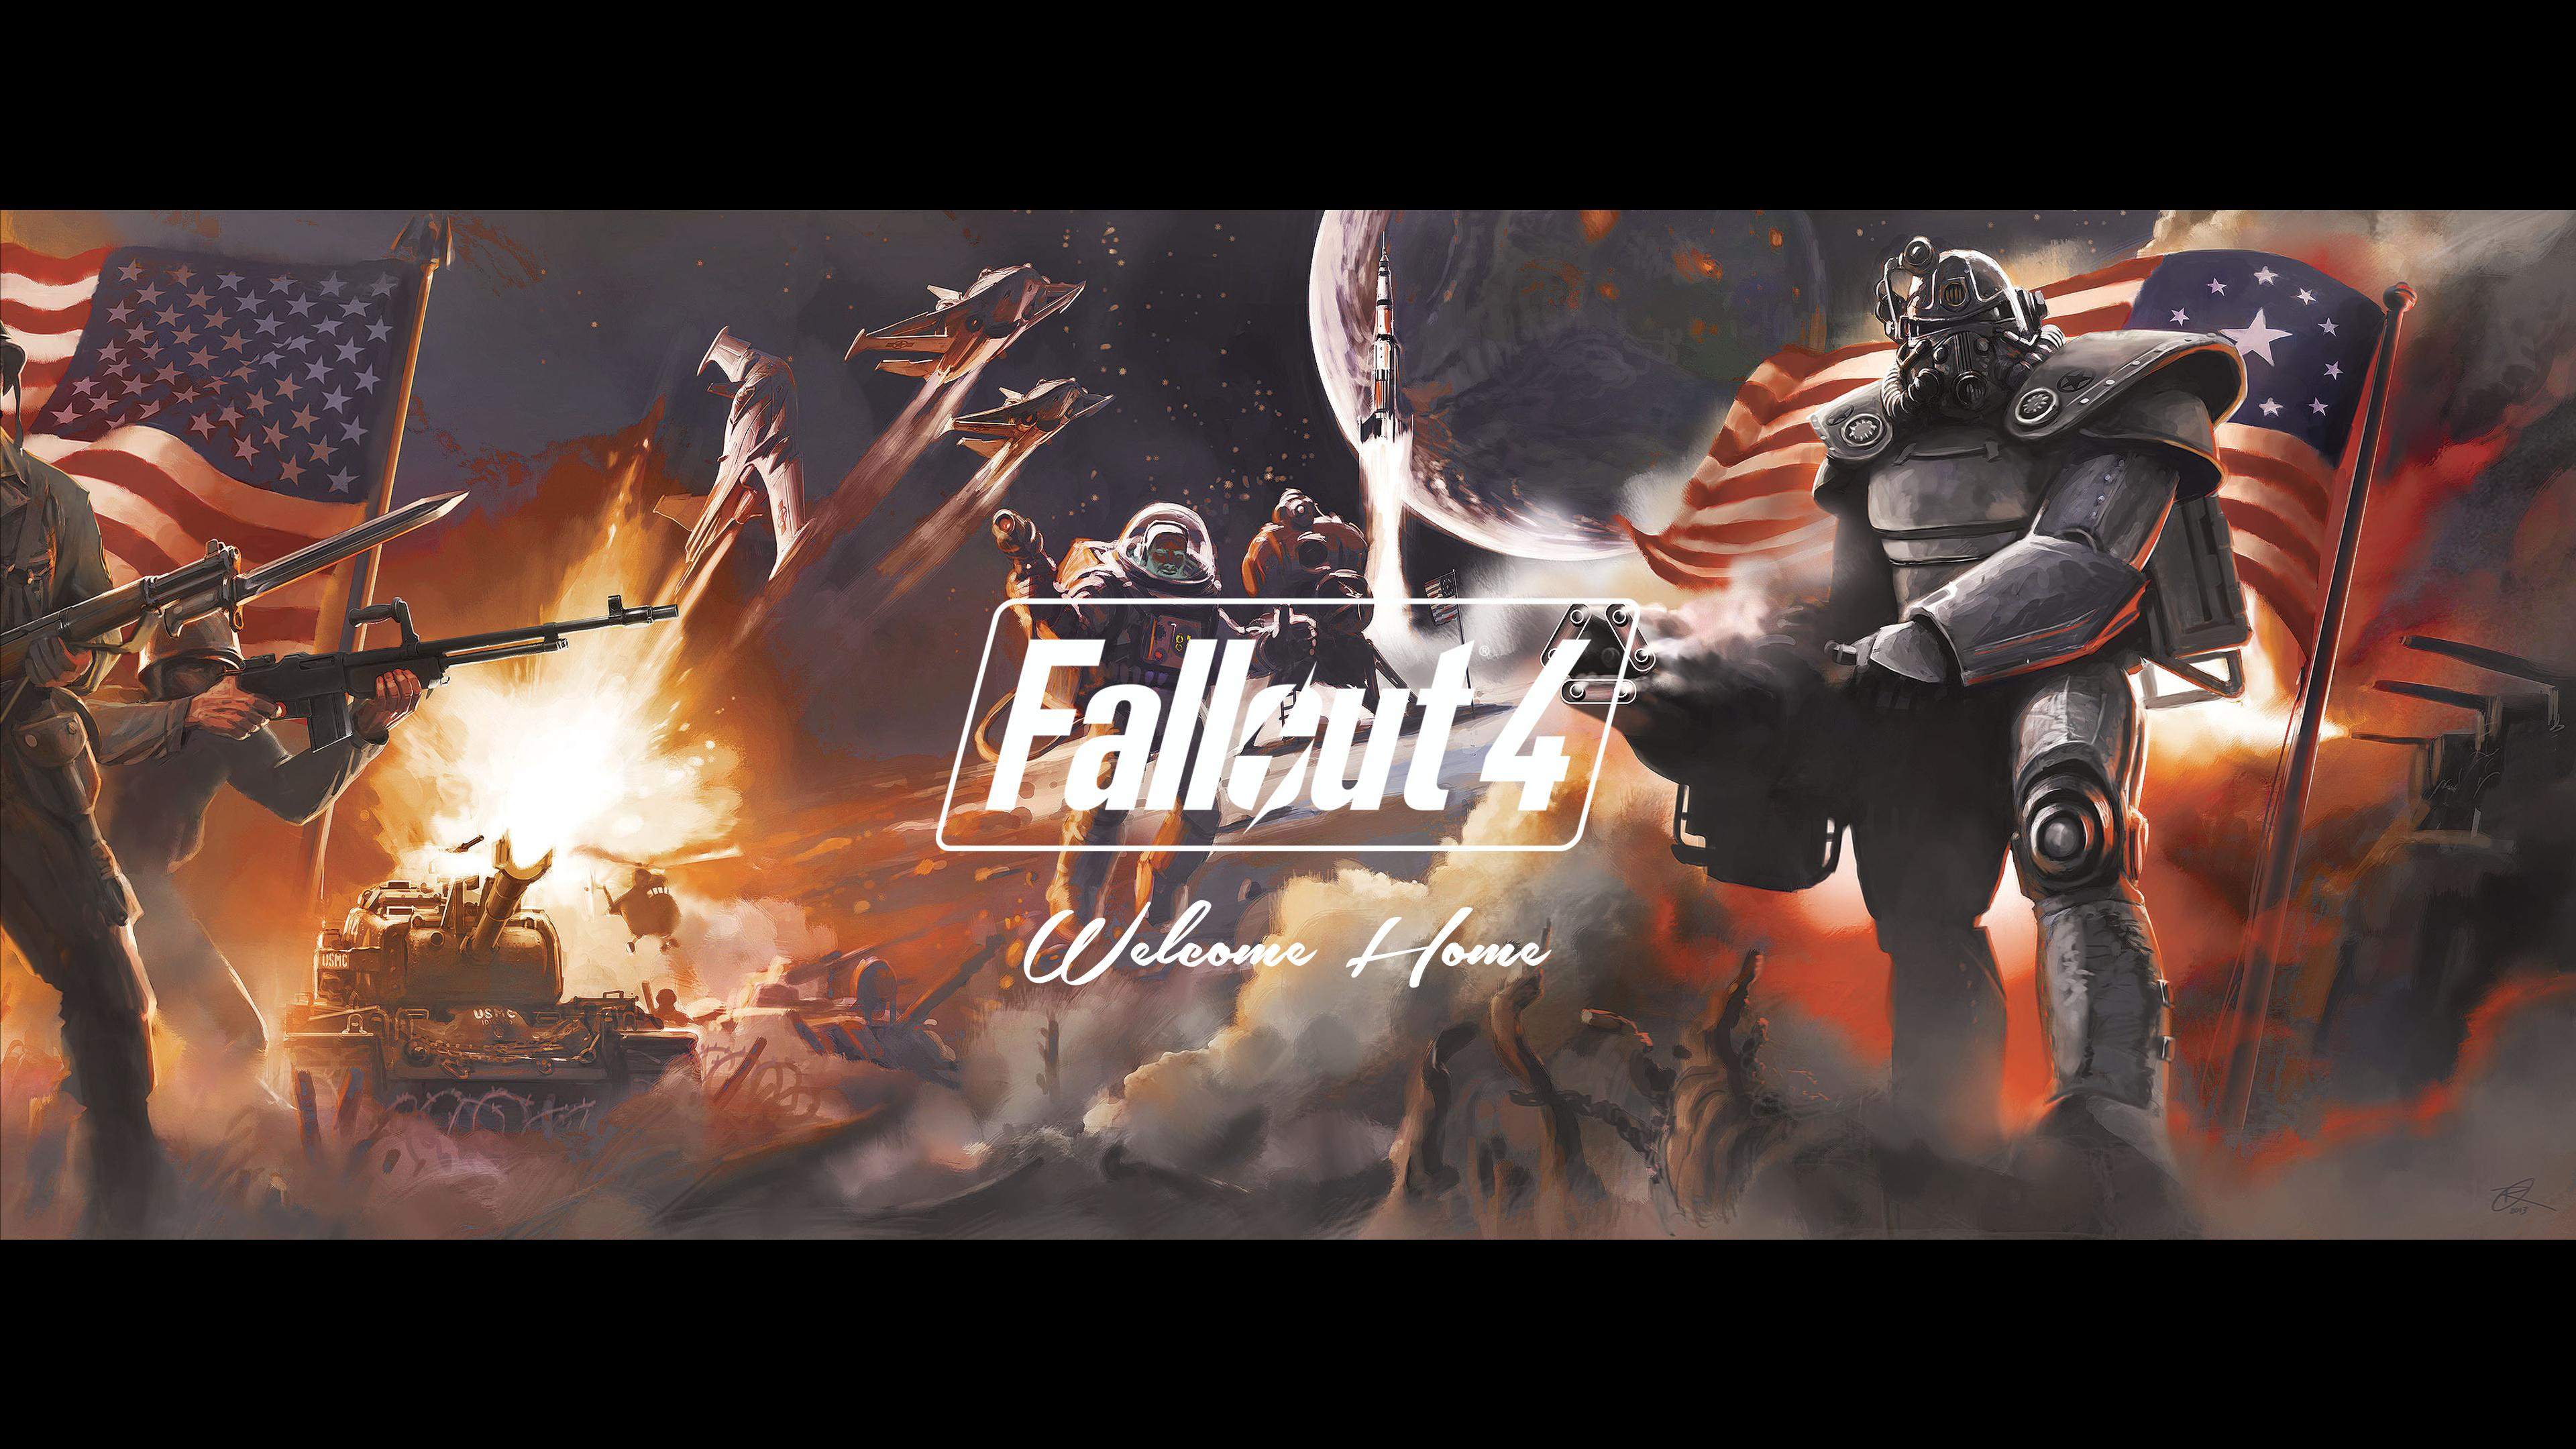 Fallout 4 dual screen wallpaper wallpapersafari for Fallout 4 mural